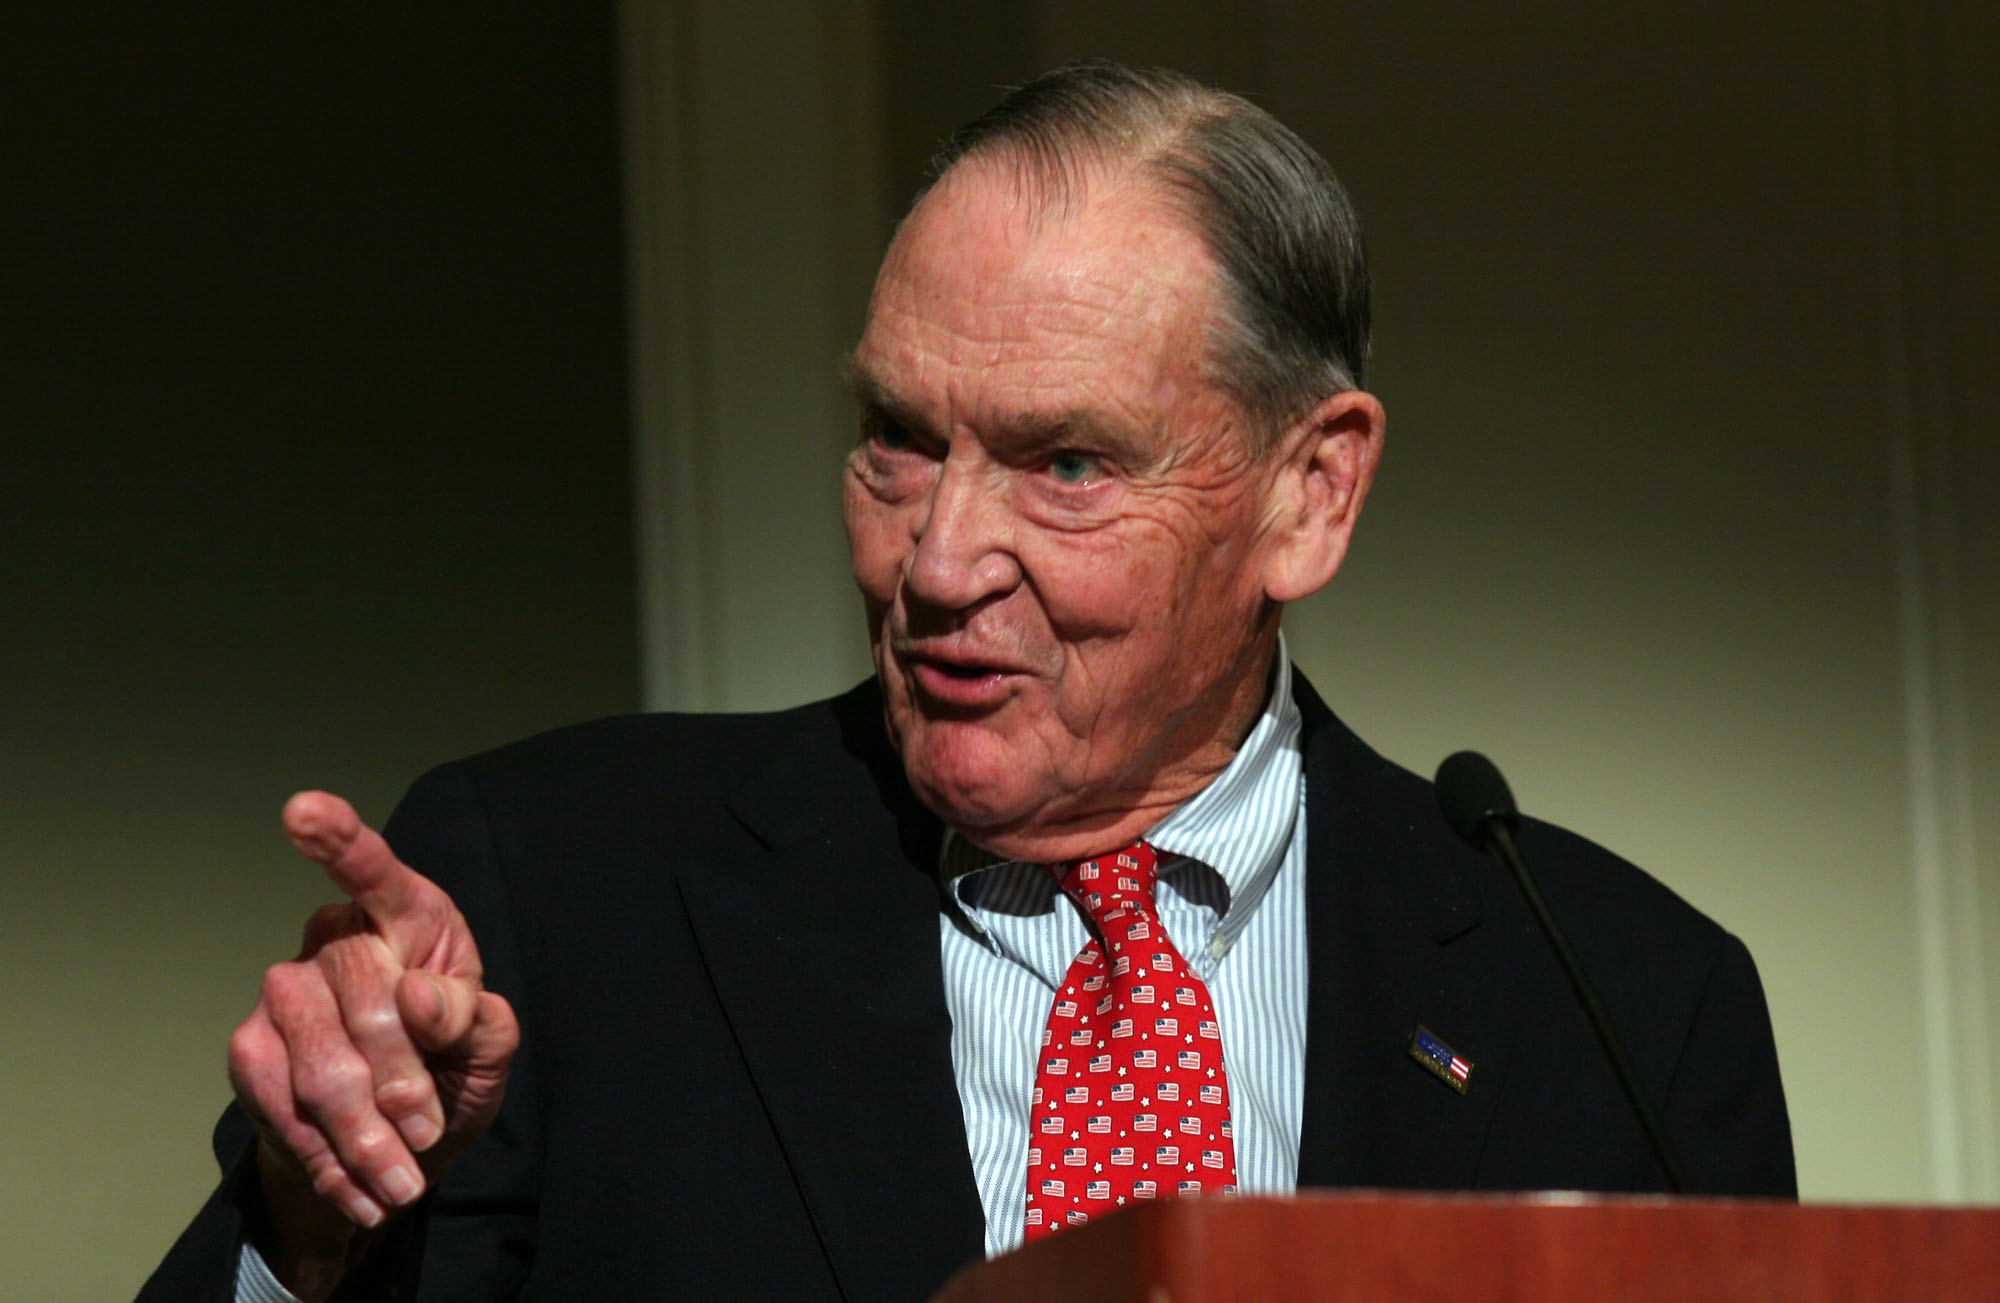 Vanguard Founder Jack Bogle Says This Was His Biggest Money Mistake